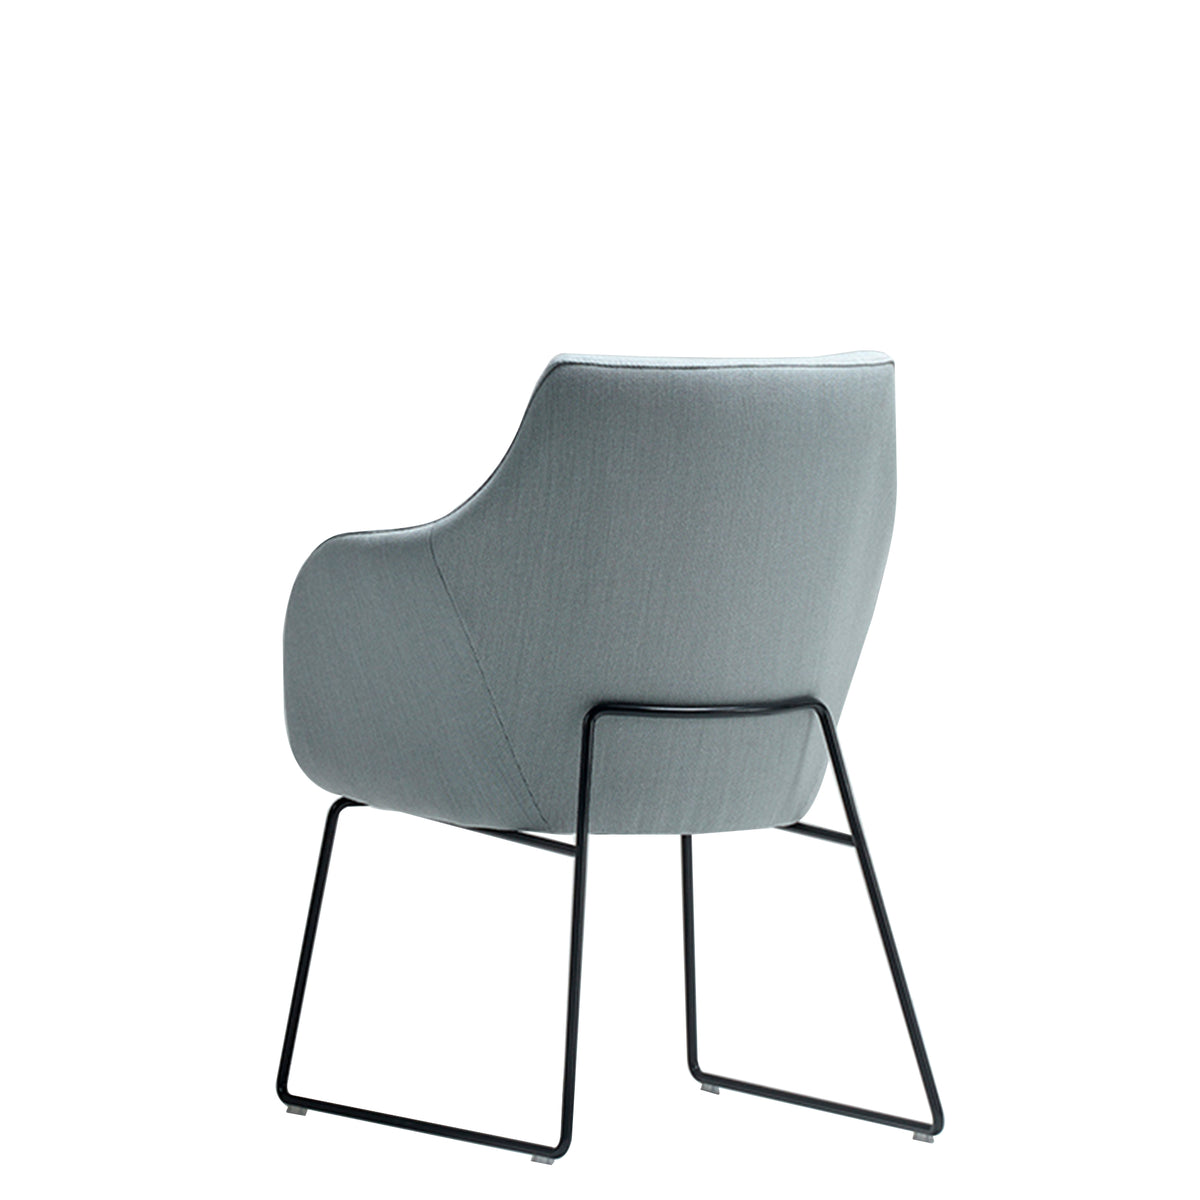 Roger Lewis Office Sintra Upright Chair